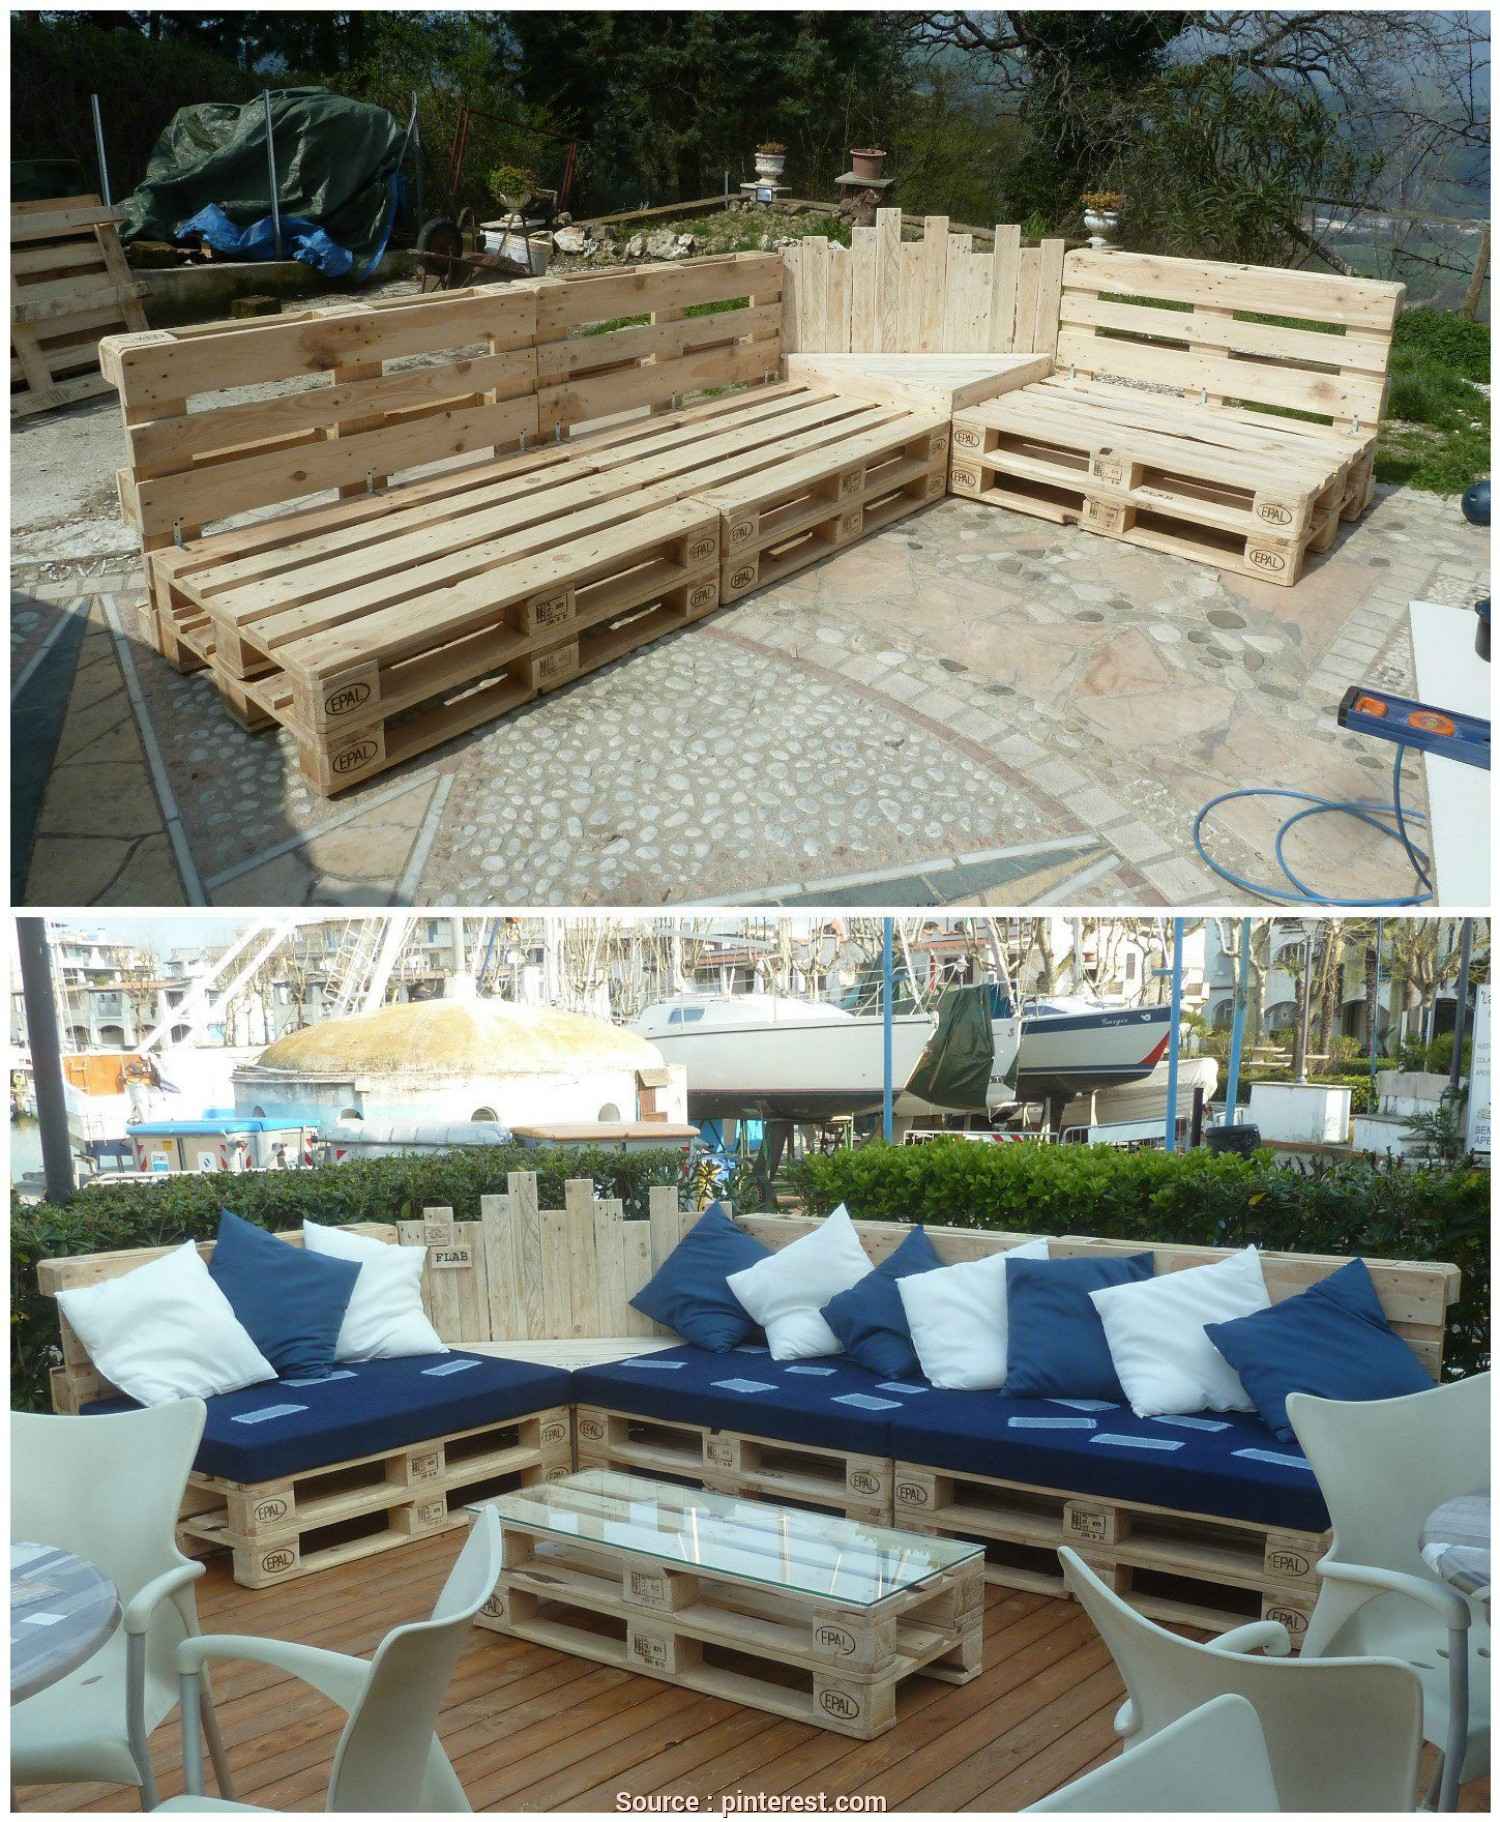 Divano Fatto, Pallets, Affascinante #Outdoor, #PalletCouch, #PalletGardenSet, #PalletLounge, #PalletSofa, #RecyclingWoodPallets We Built This Outdoor Pallet Sectional, Out Of 12 Pallets